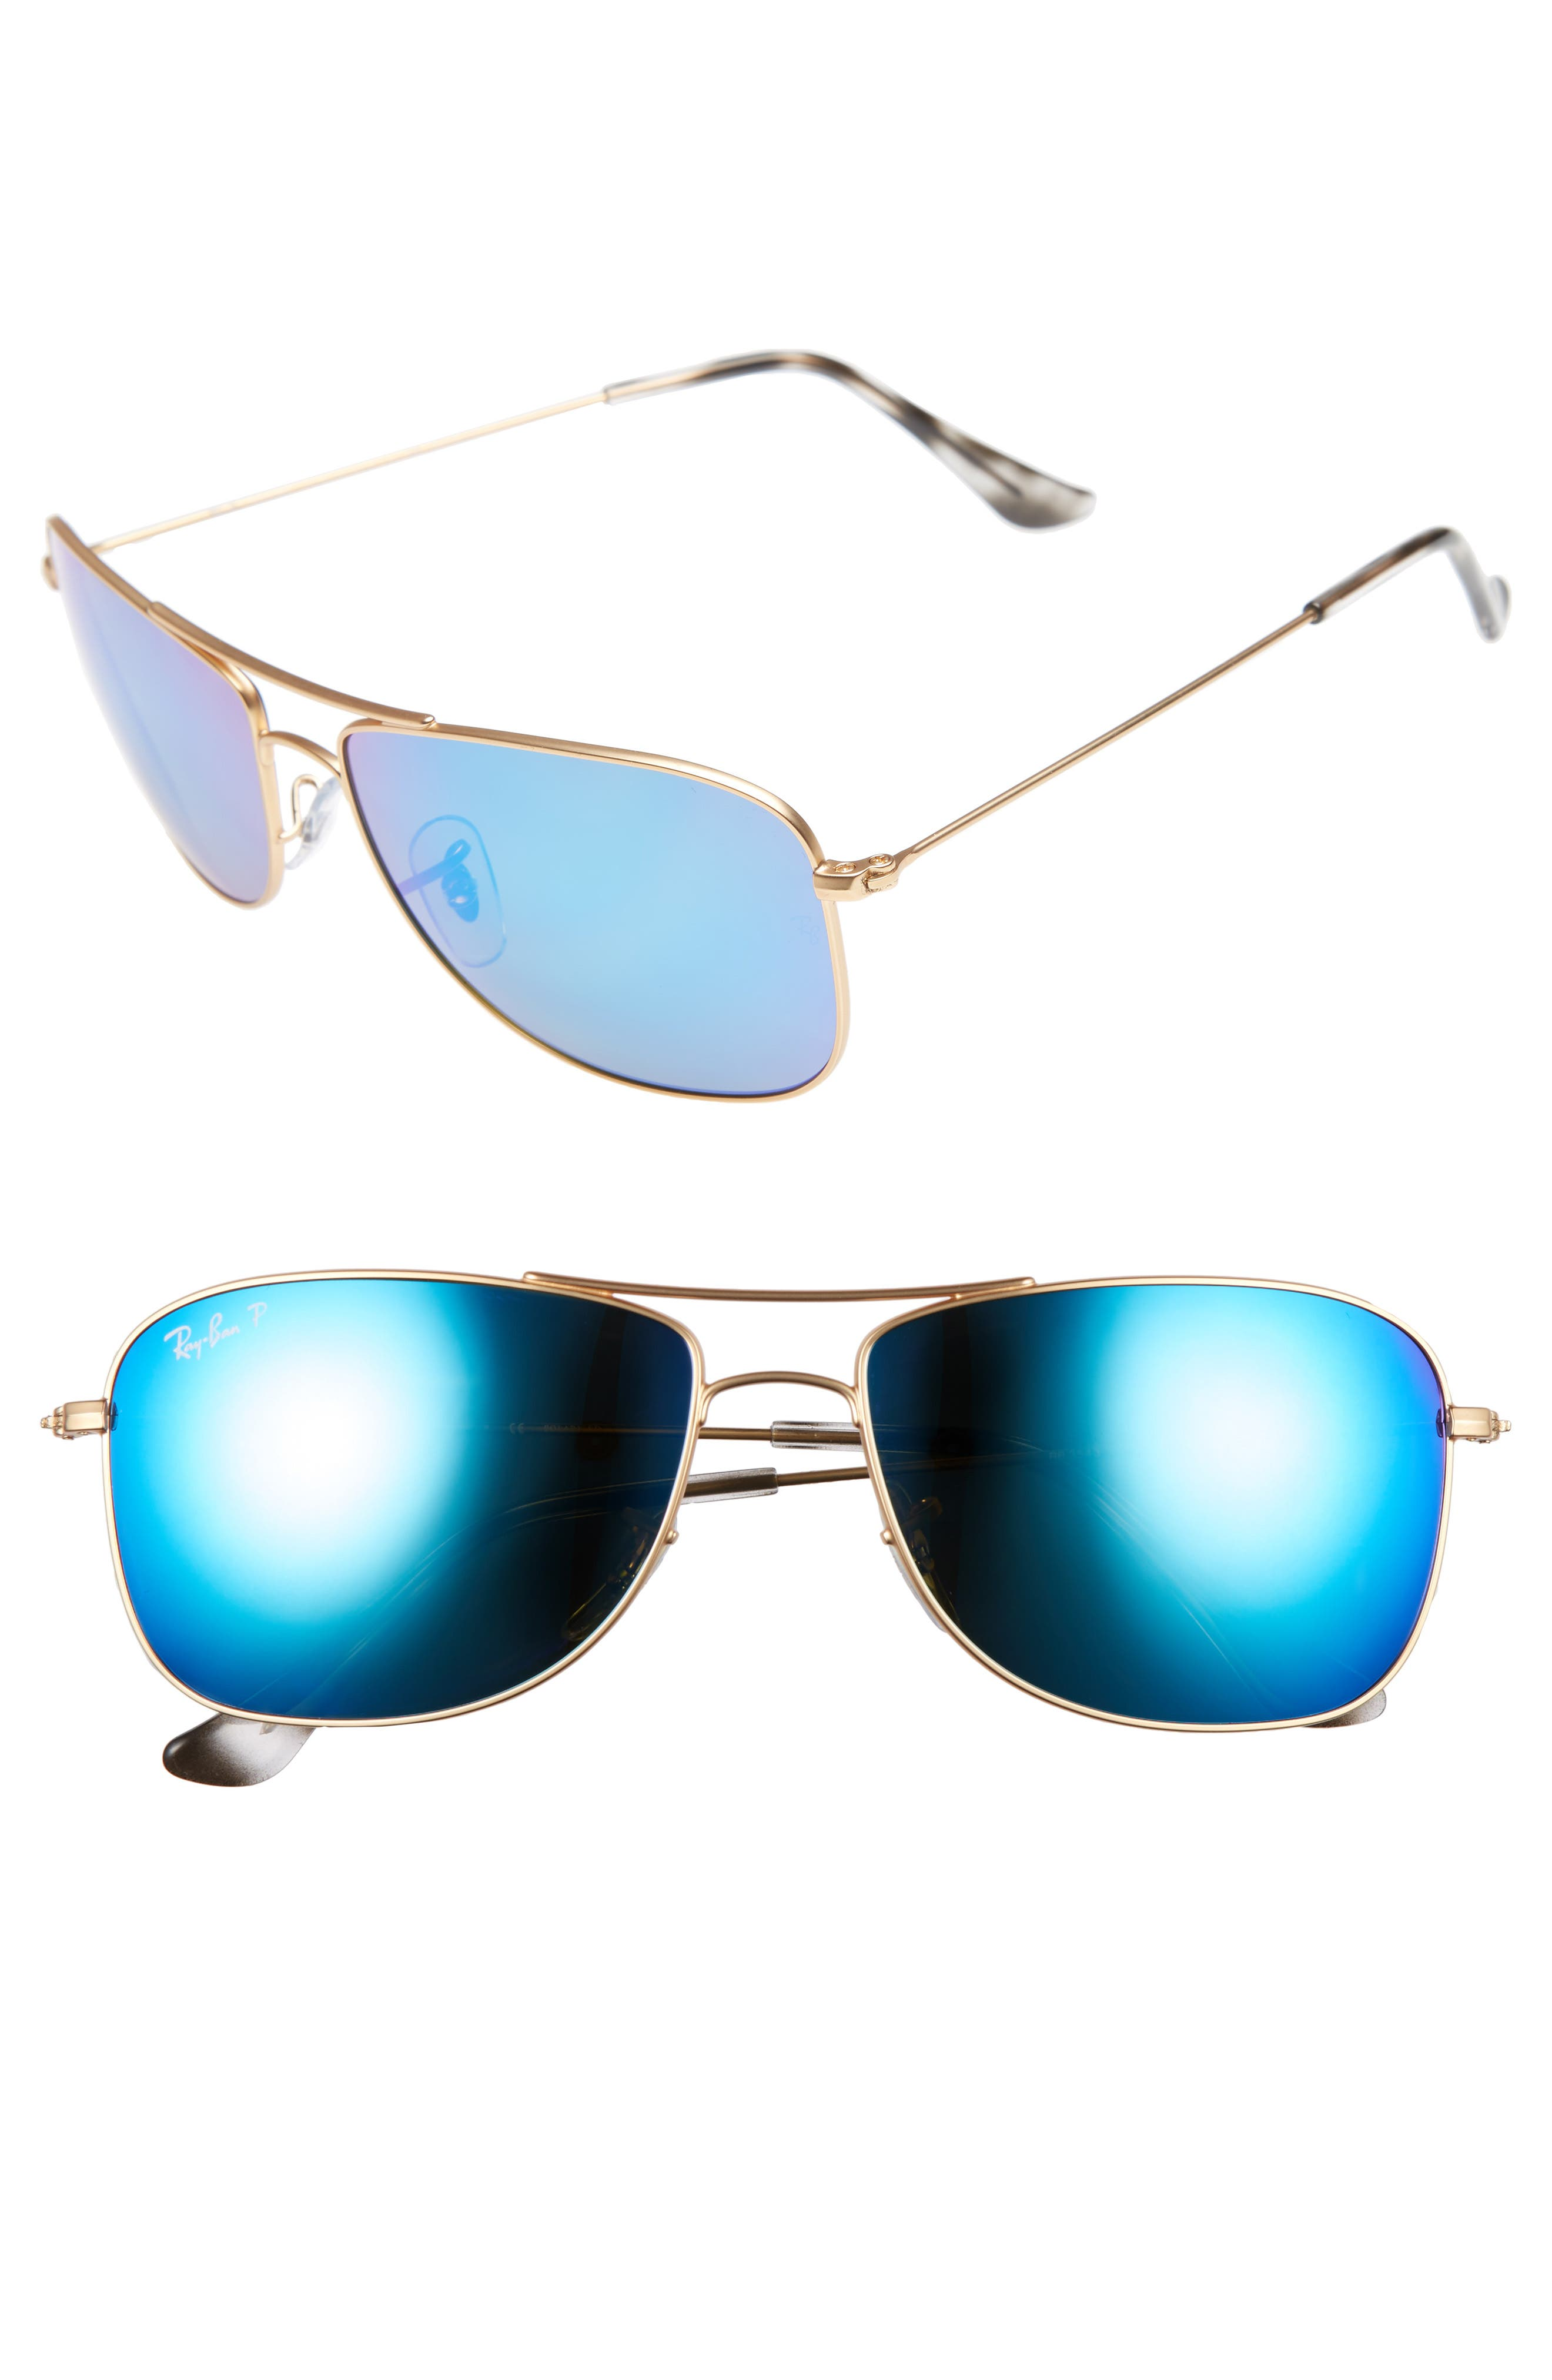 Main Image - Ray-Ban 59mm Polarized Aviator Sunglasses